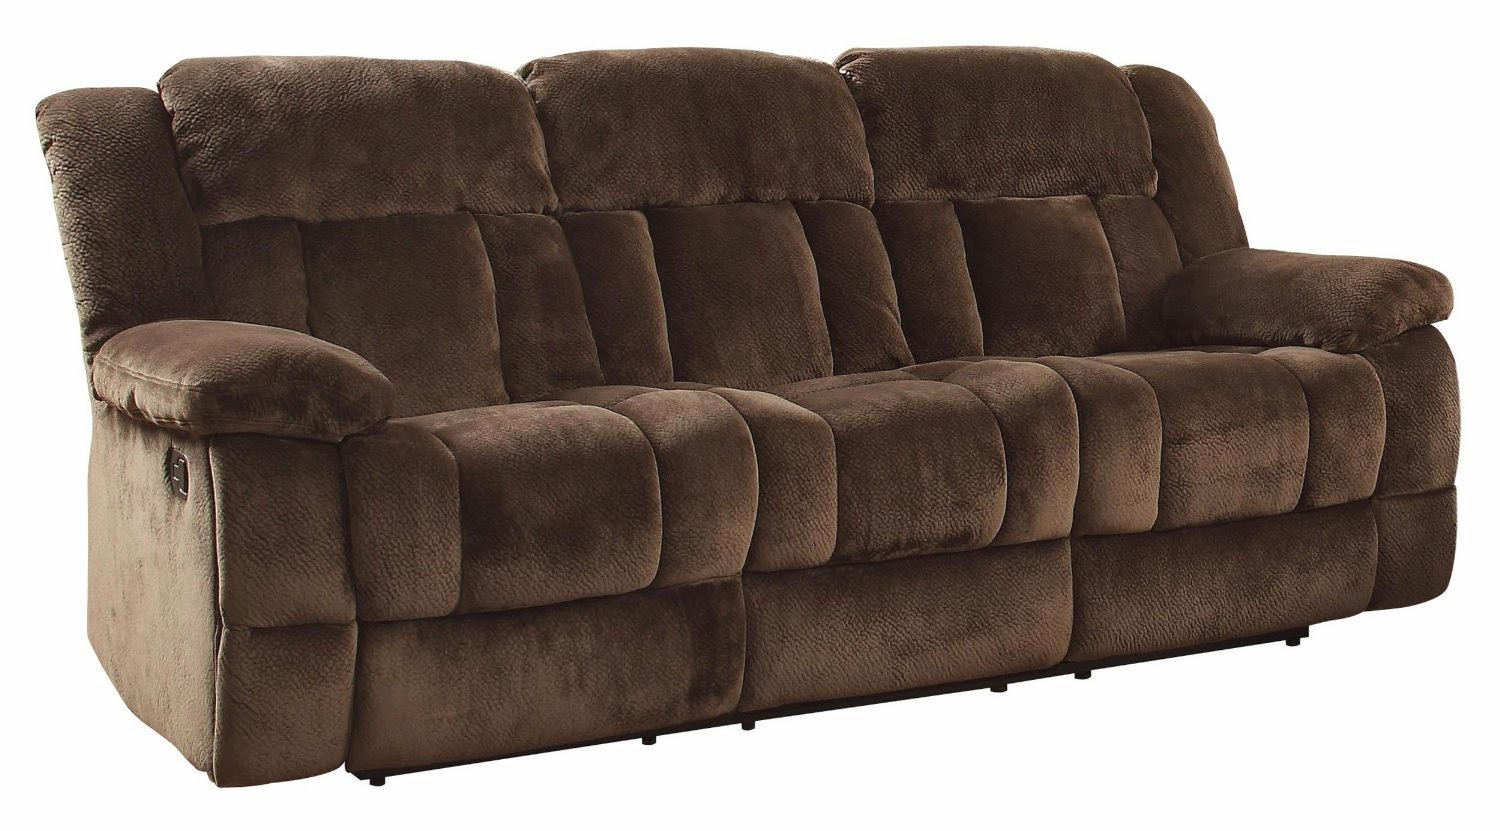 Cheap reclining sofas sale fabric recliner sofas sale for Sofa couch for sale